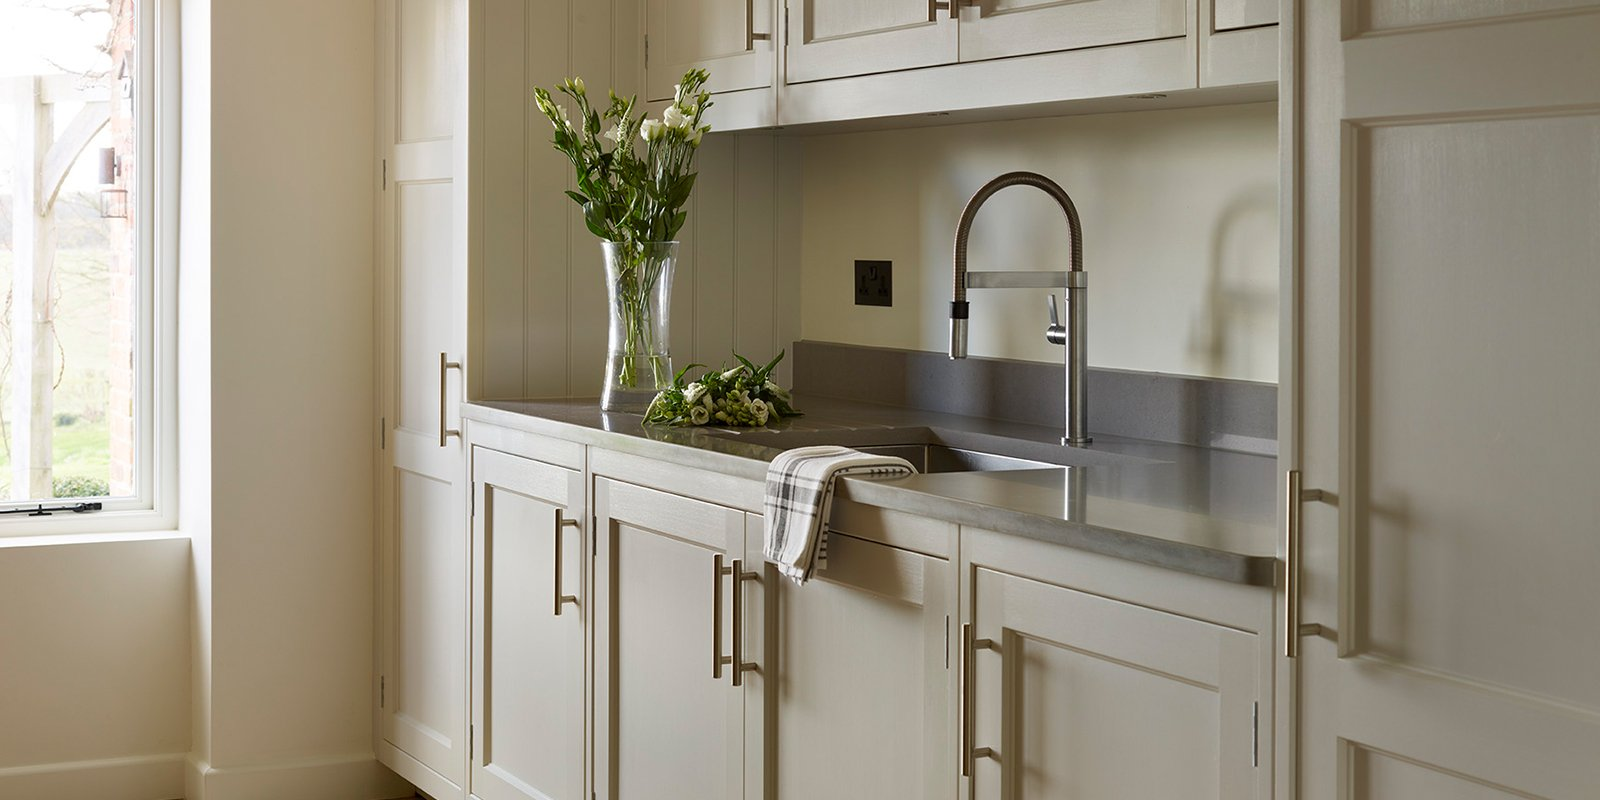 wall units with sink and vase of flowers